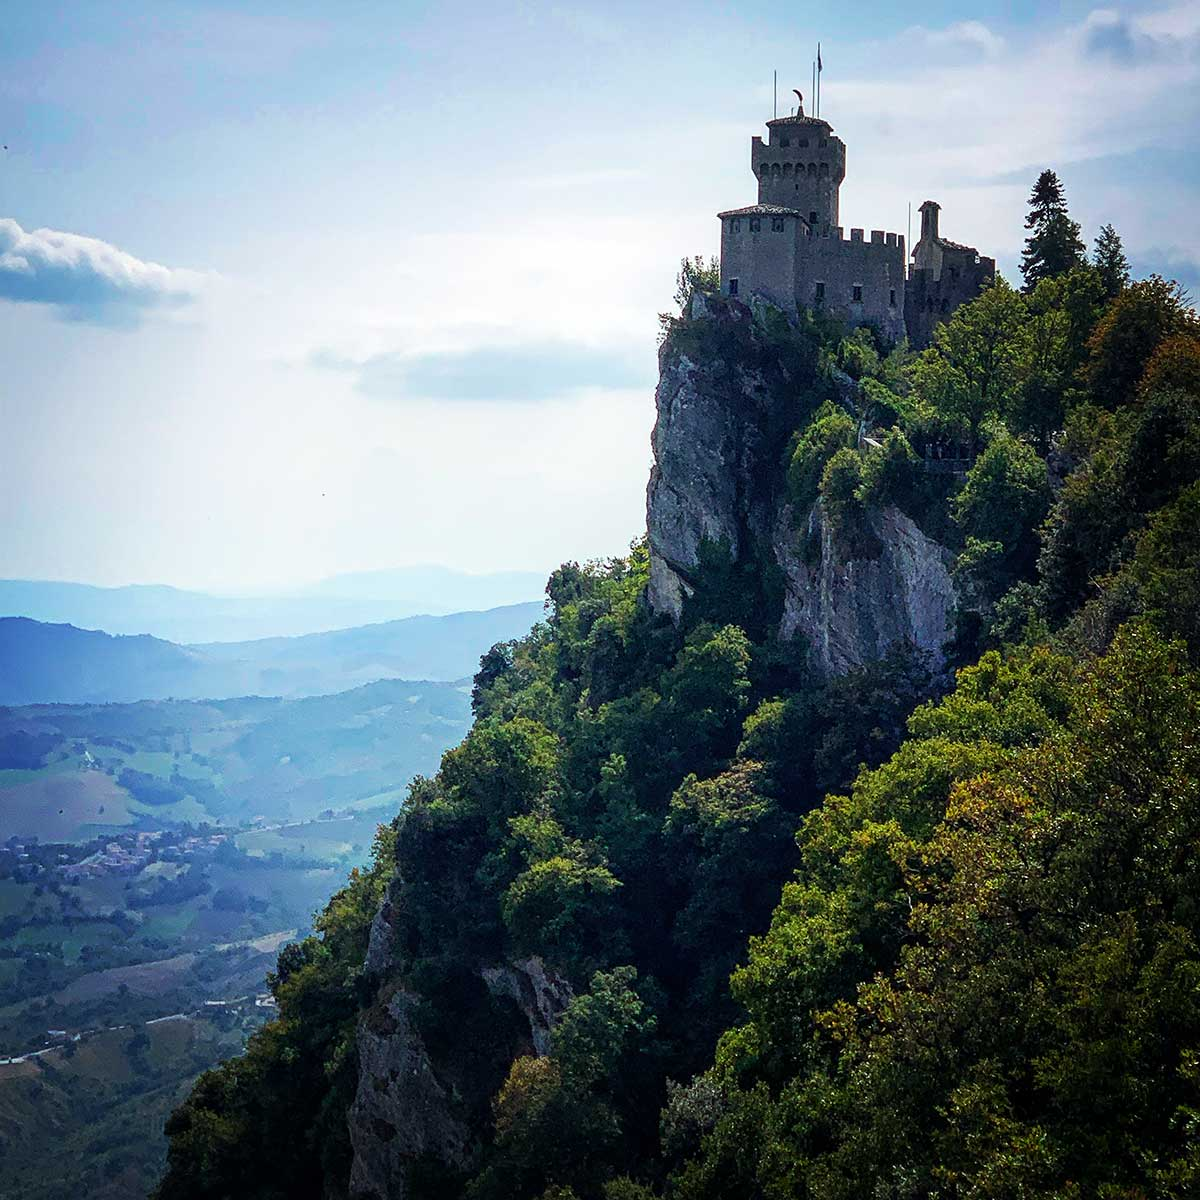 San Marino Castle tower